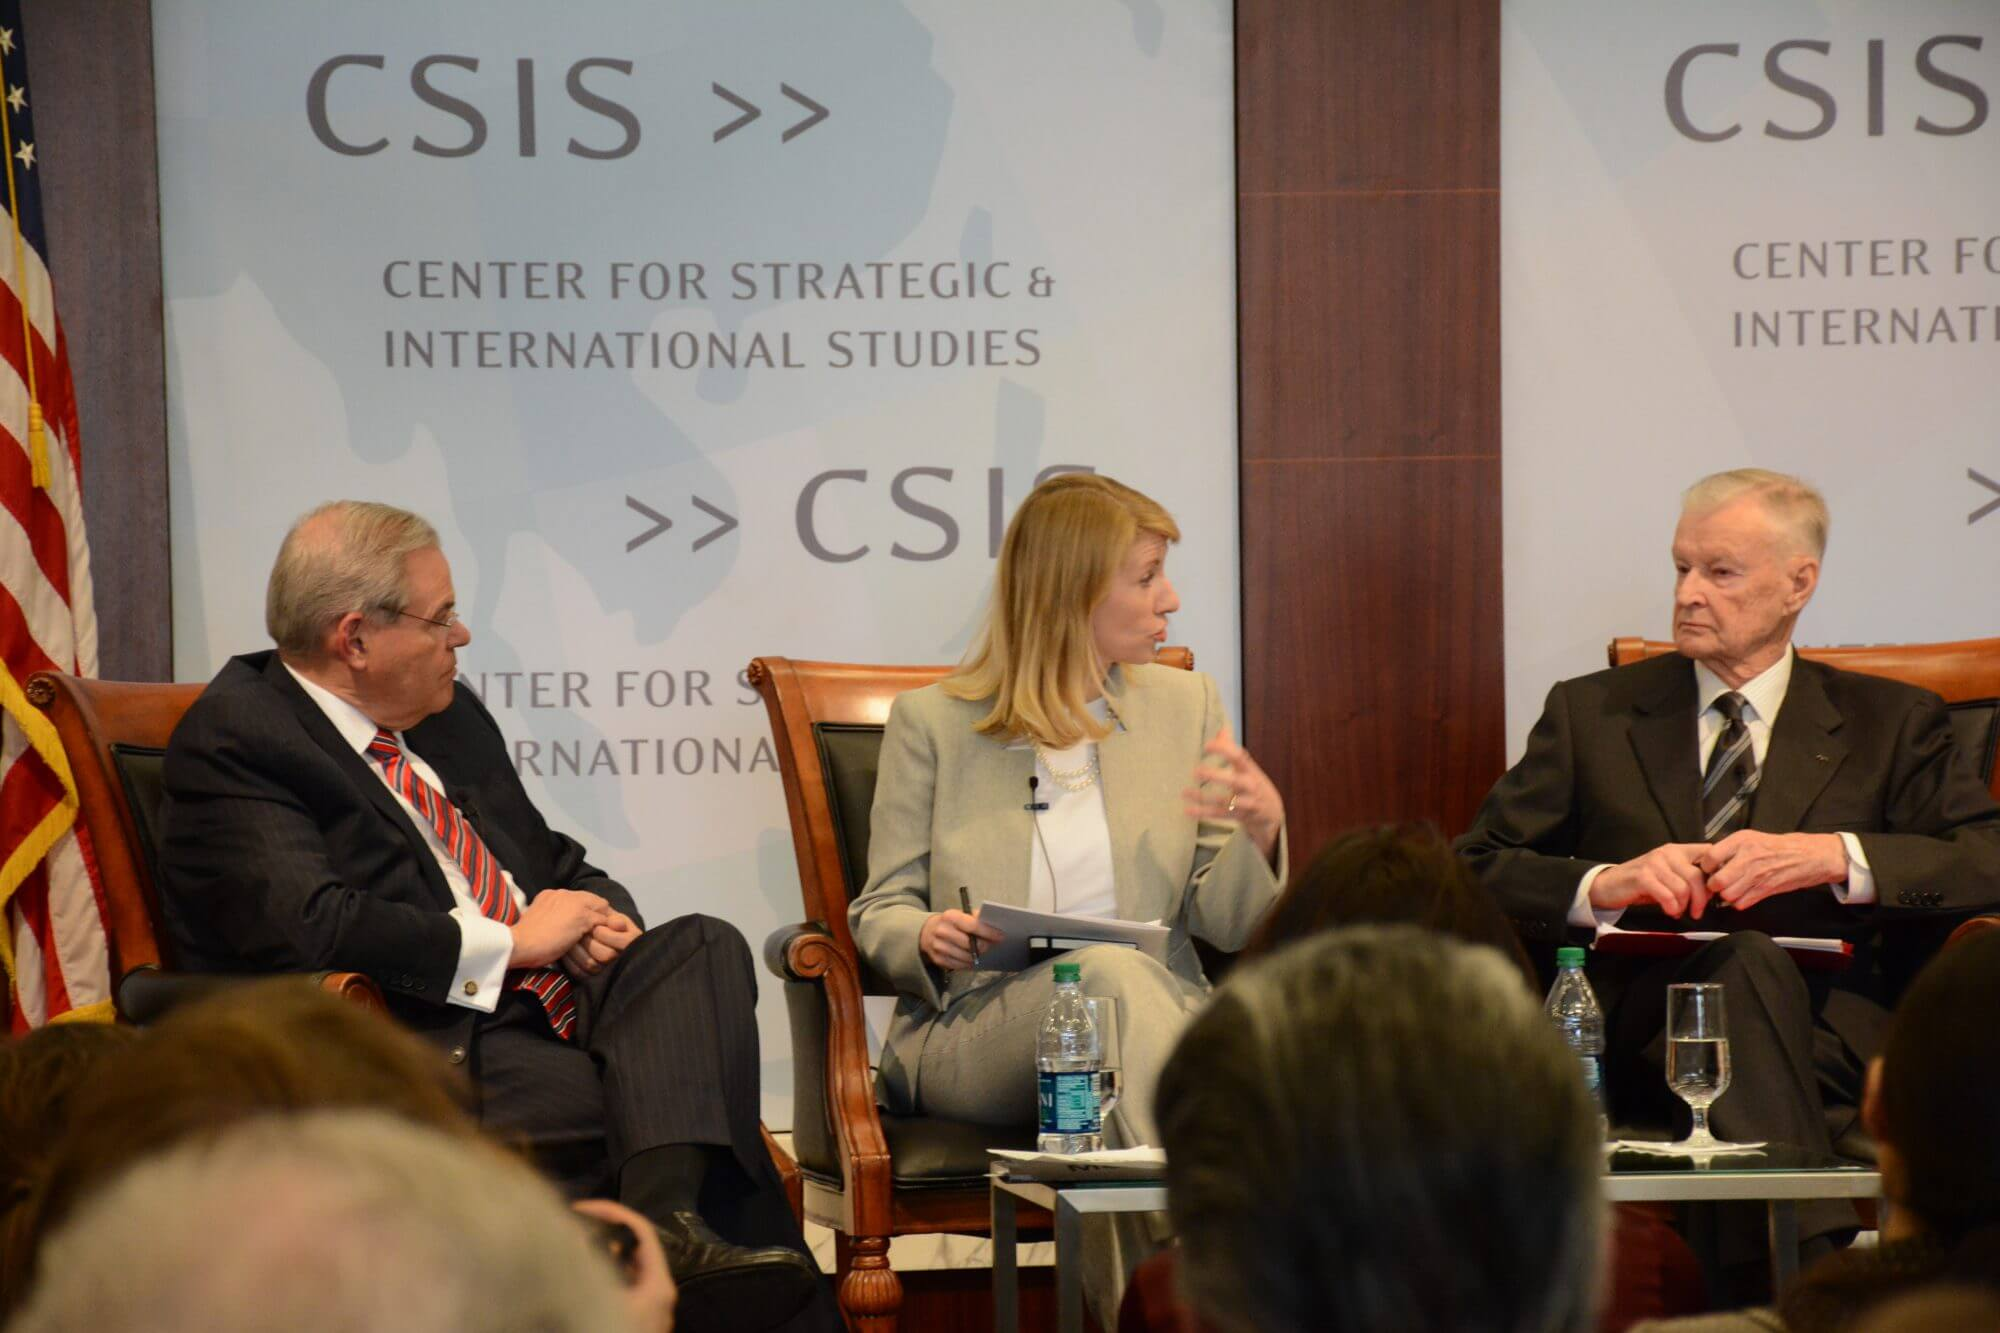 'Revisionist Russia' demands change in American strategy, experts say